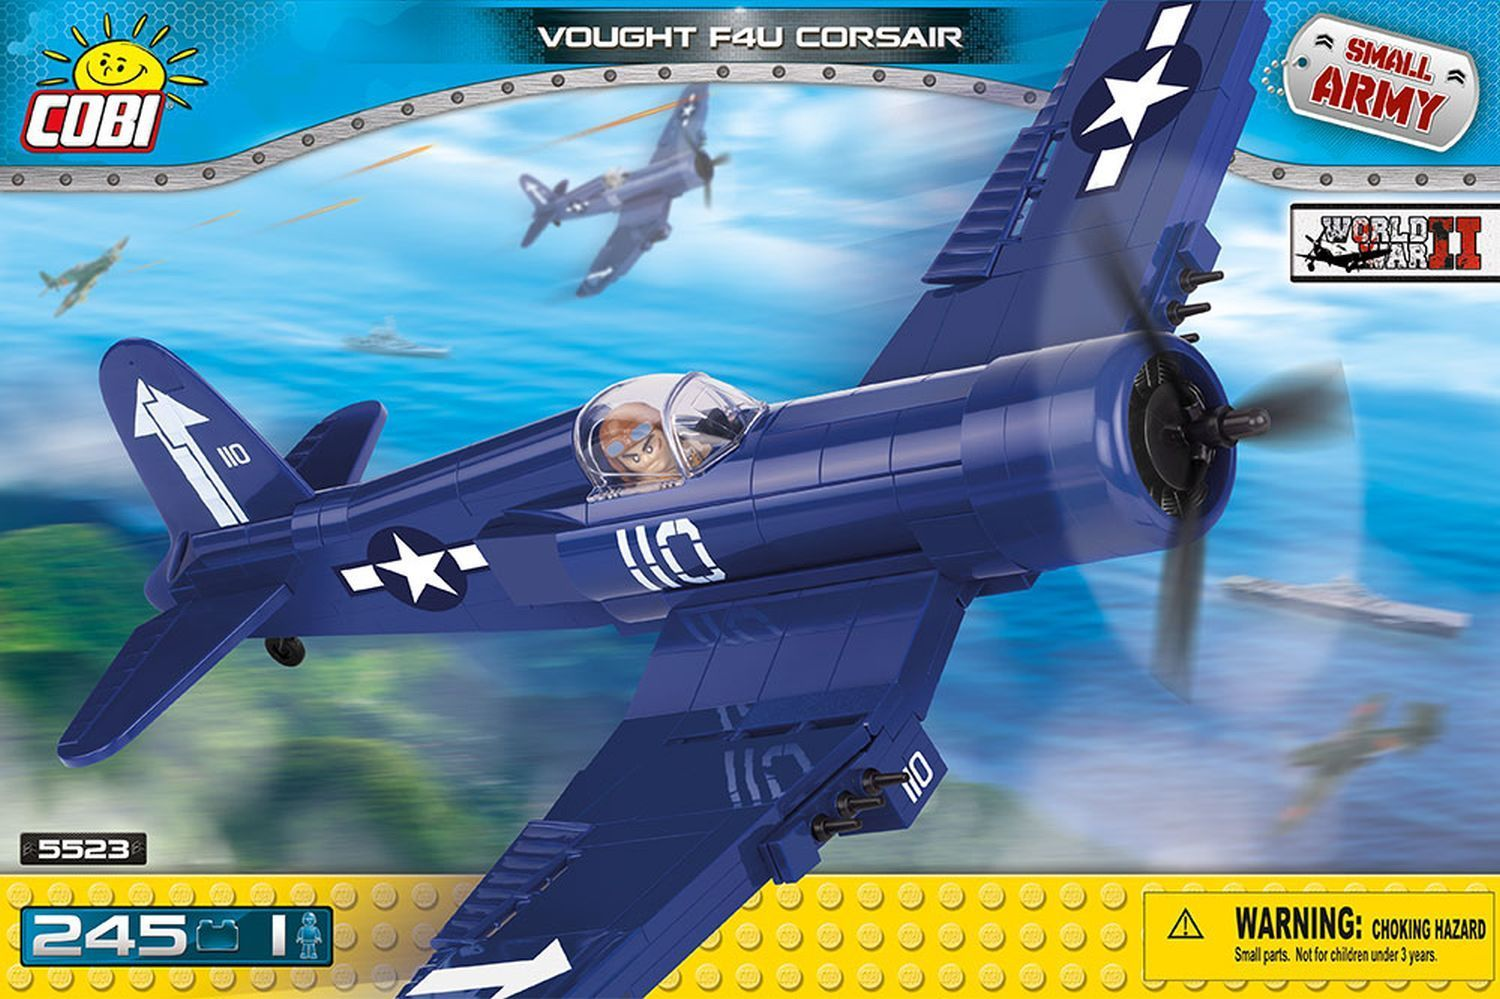 5523_Cobi_2.WK_Corsair_www-super-bricks.de_1_Cobi_2.WK_www-super-bricks.de